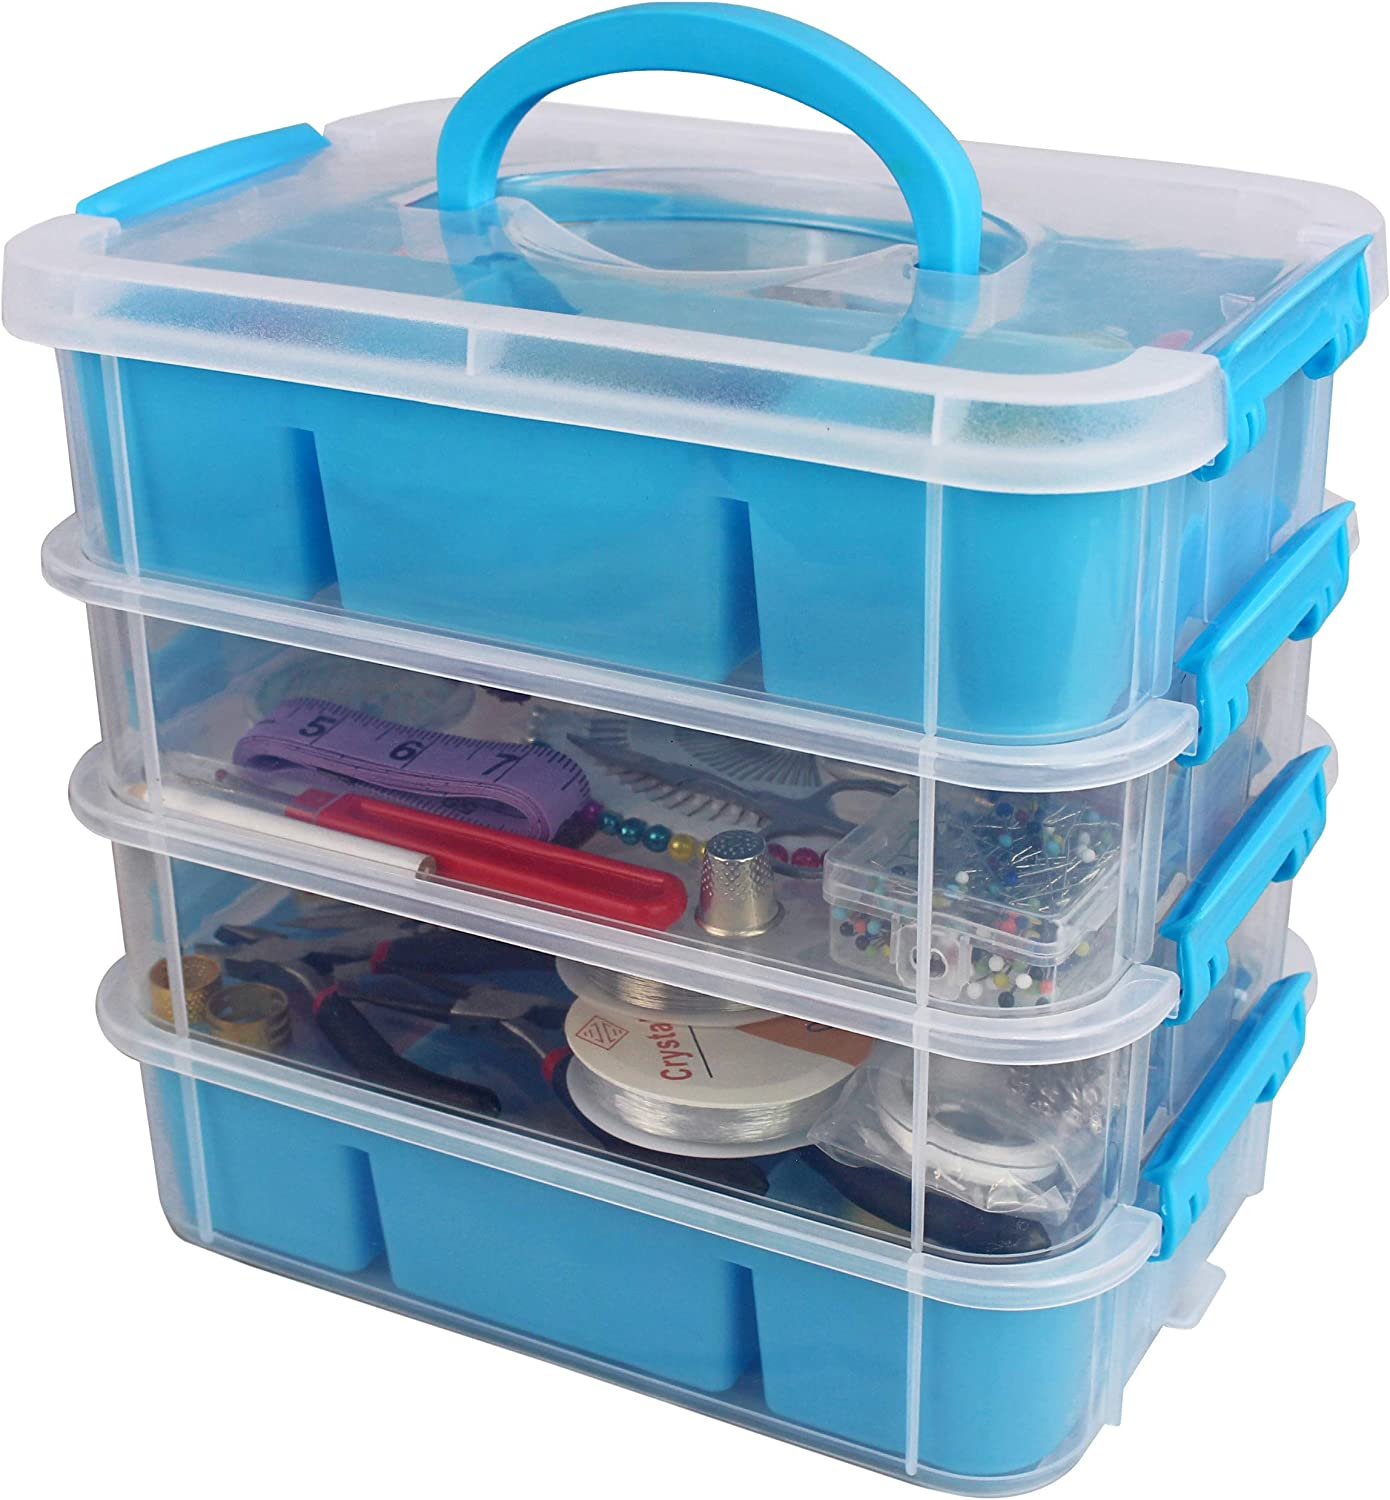 Stackable Plastic Craft Storage Containers by Bins & Things | Plastic Storage Organizer Bin with 2 Trays | Bins for Arts Crafts Supplies | Jewelry Making Storage Box | Portable Sewing Box Organizer